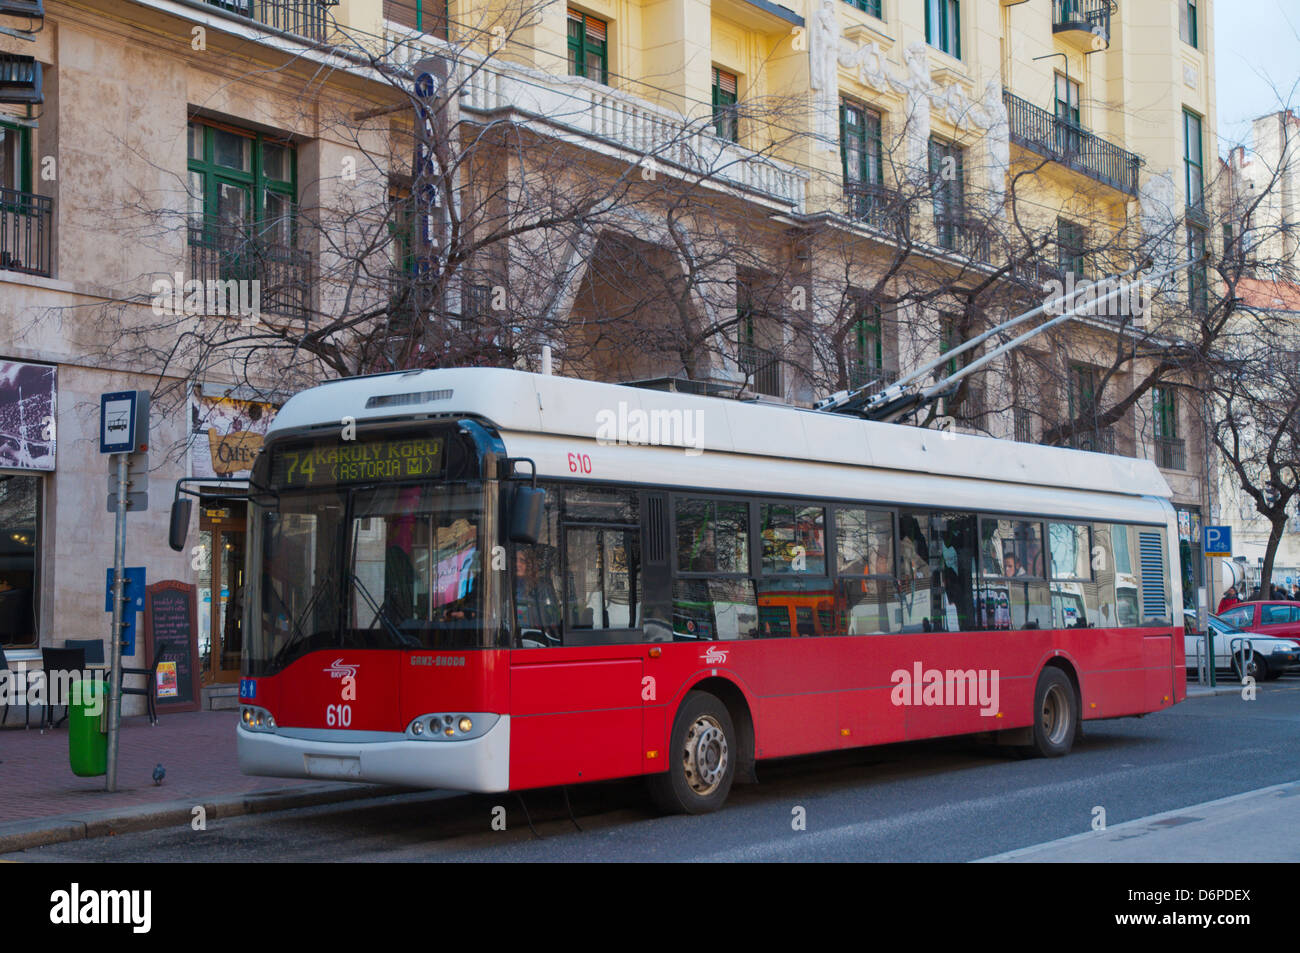 Trolley bus number 74 Dohany Utca street Budapest Hungary Europe Stock Photo